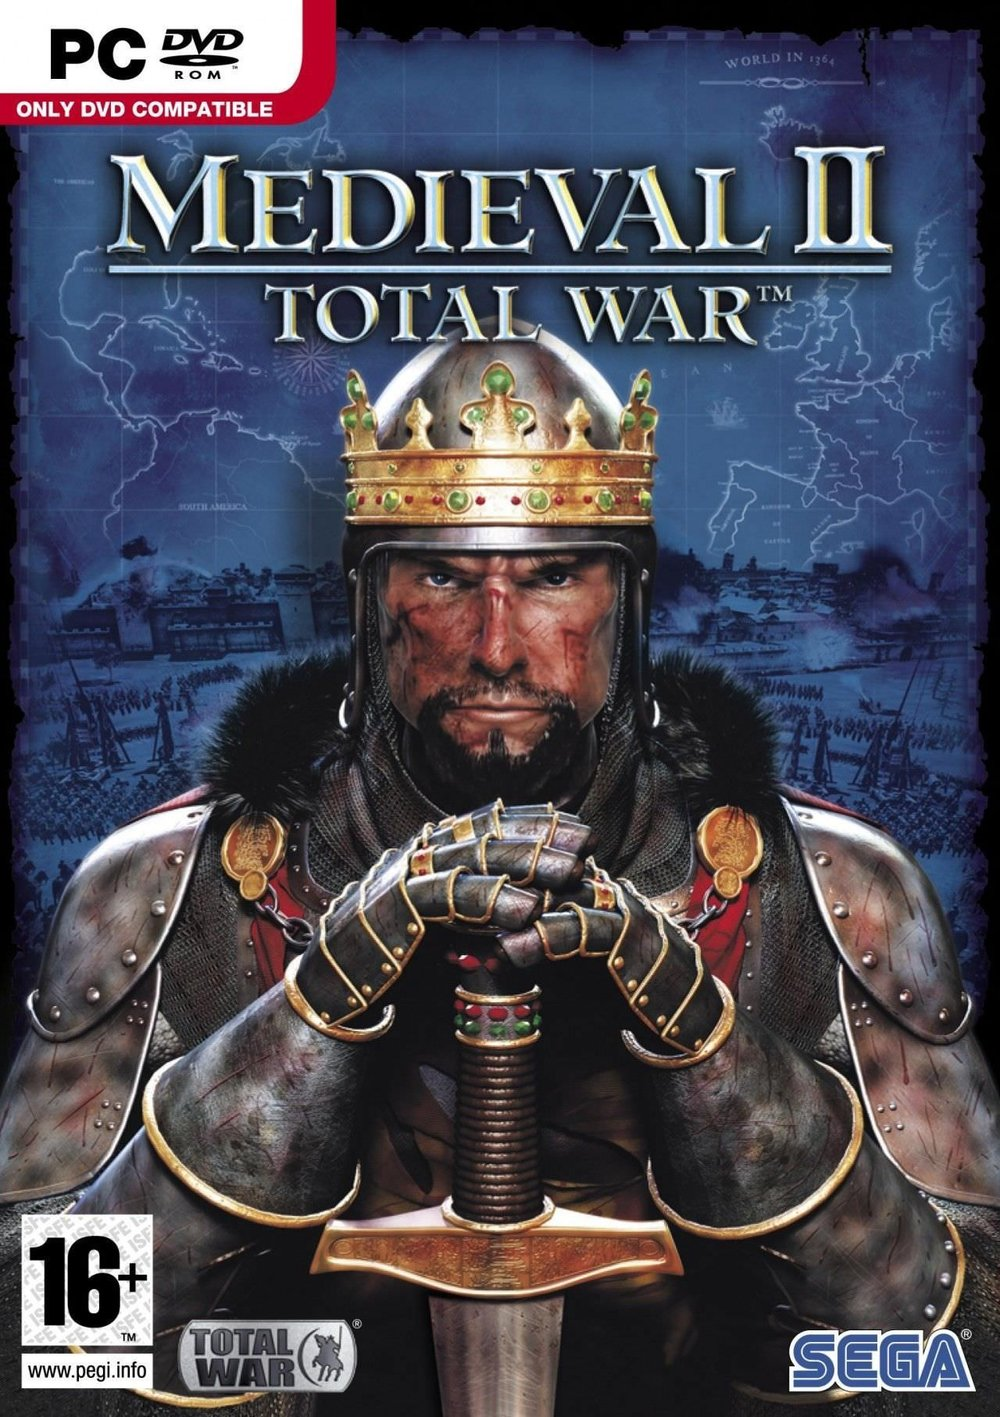 medieval-ii-total-war-pc(1).jpg